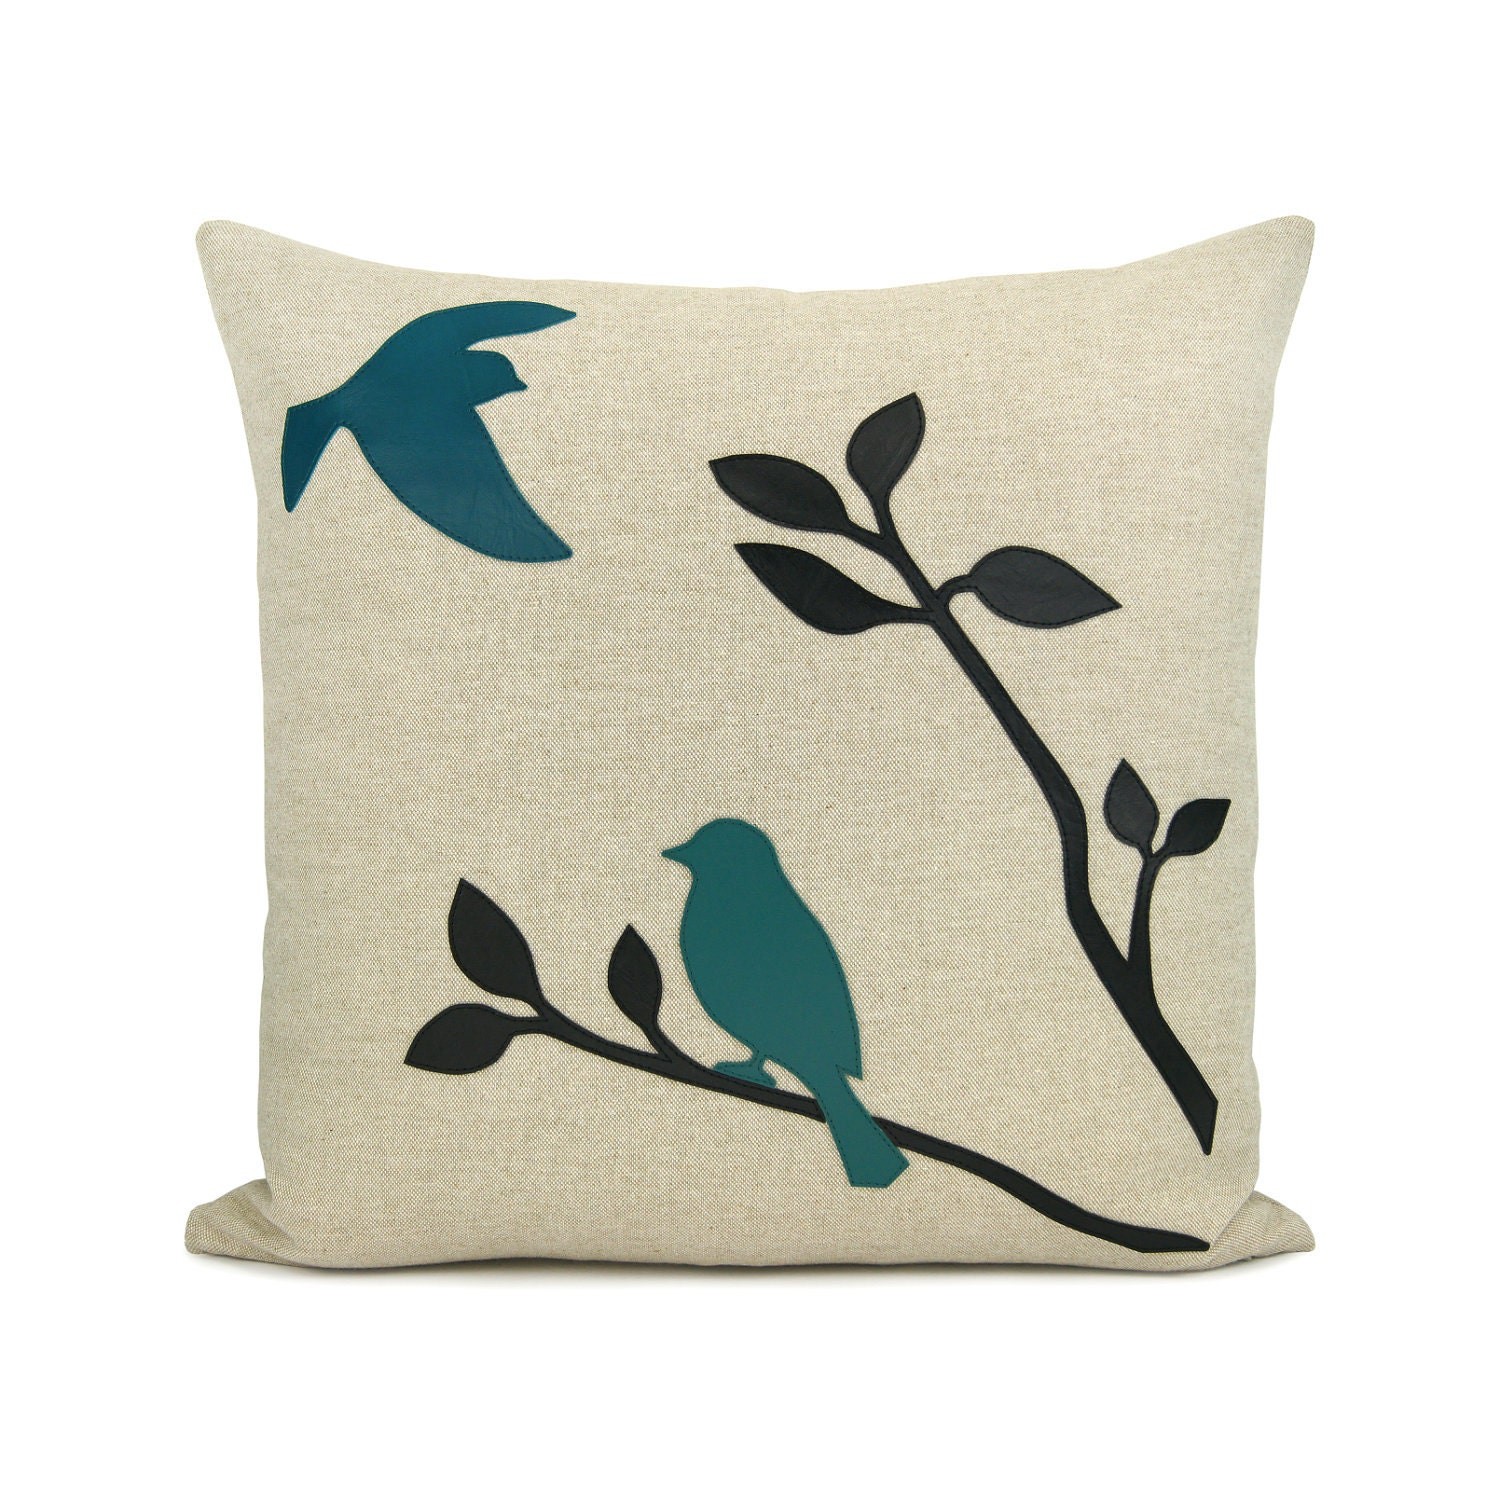 Blue Bird Throw Pillows : 16x16 decorative pillow cover Love birds throw by ClassicByNature